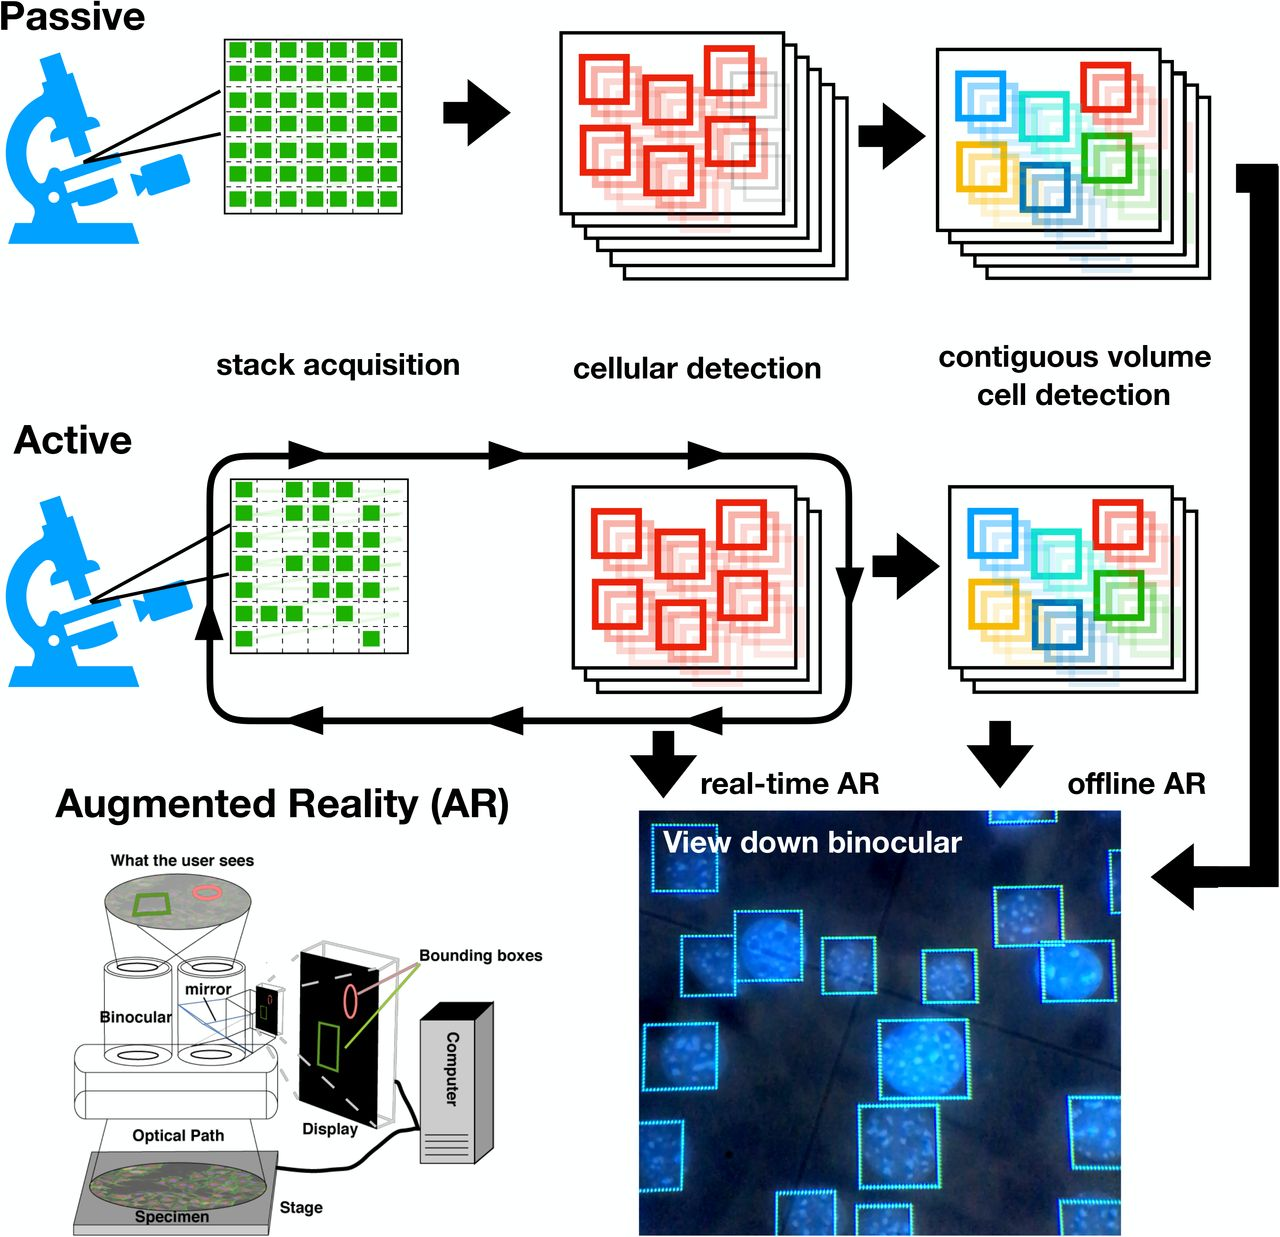 Object Detection Networks and Augmented Reality for Cellular